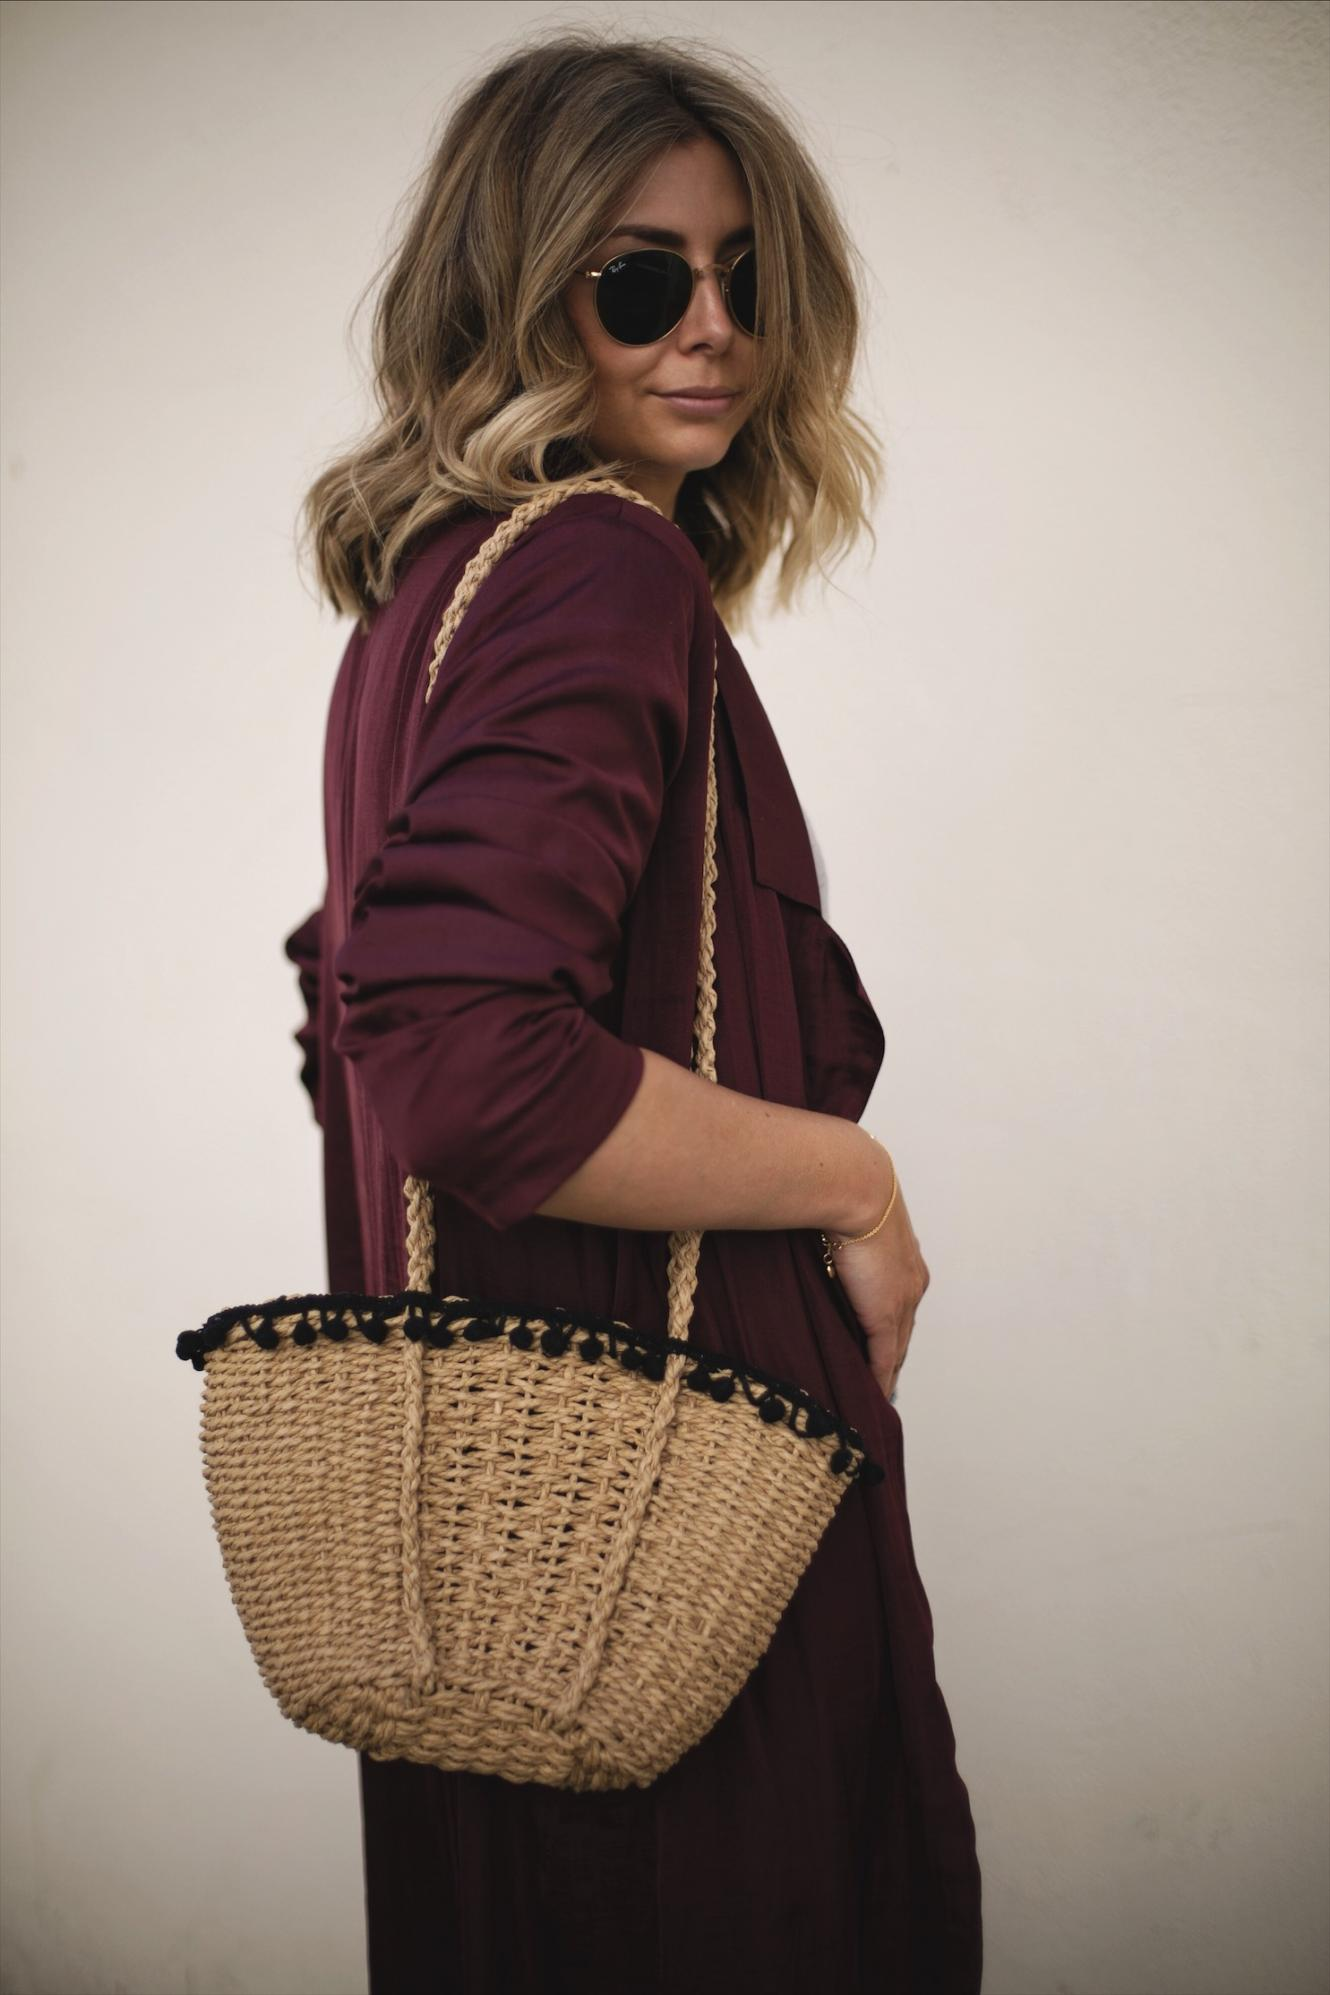 Emma Hill wears wine coloured long silky duster jacket kimono, straw basket bag with pom pom detail, gold Ray-Ban round metal sunglasses, blonde lob hair